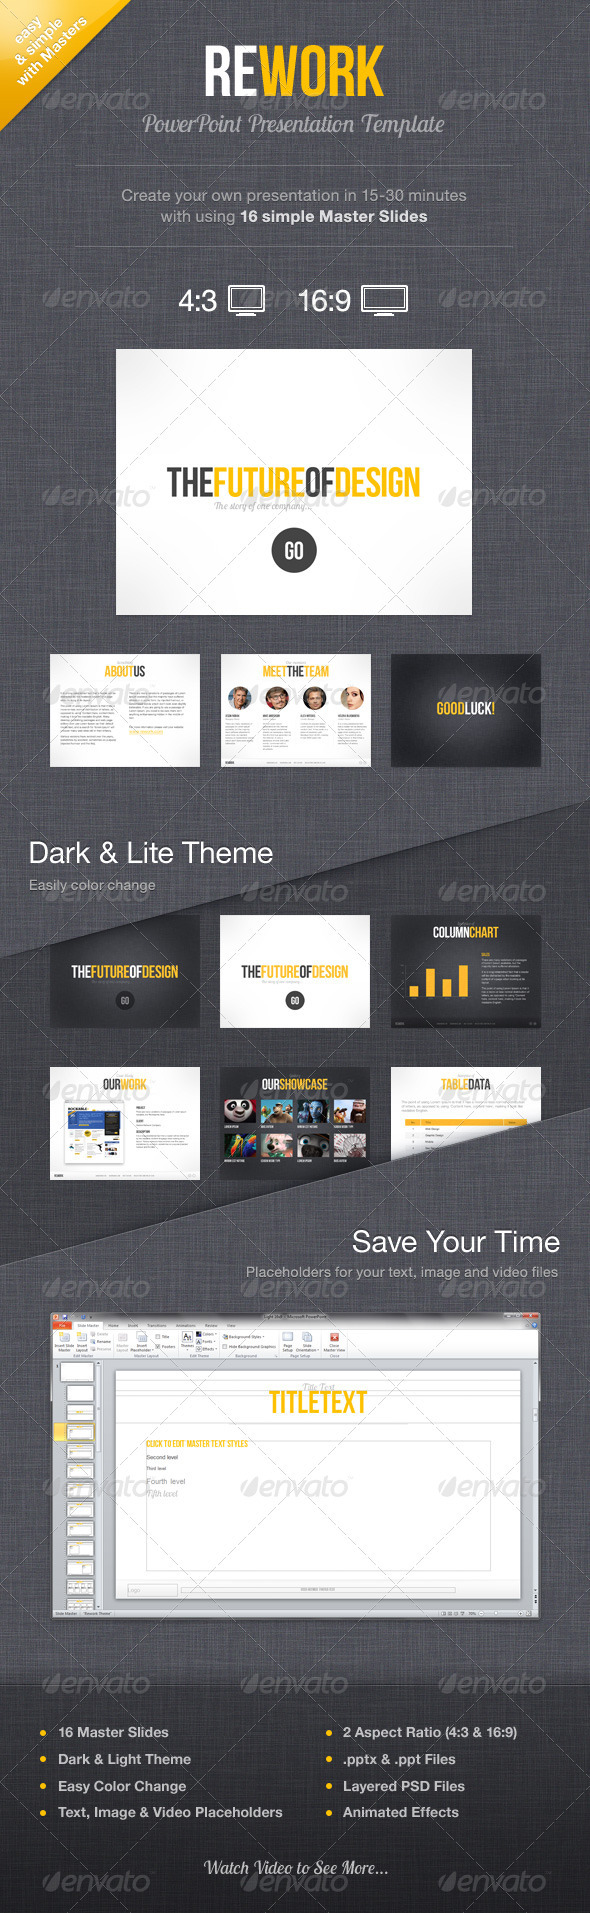 GraphicRiver Rework PowerPoint Presentation Template 1249481